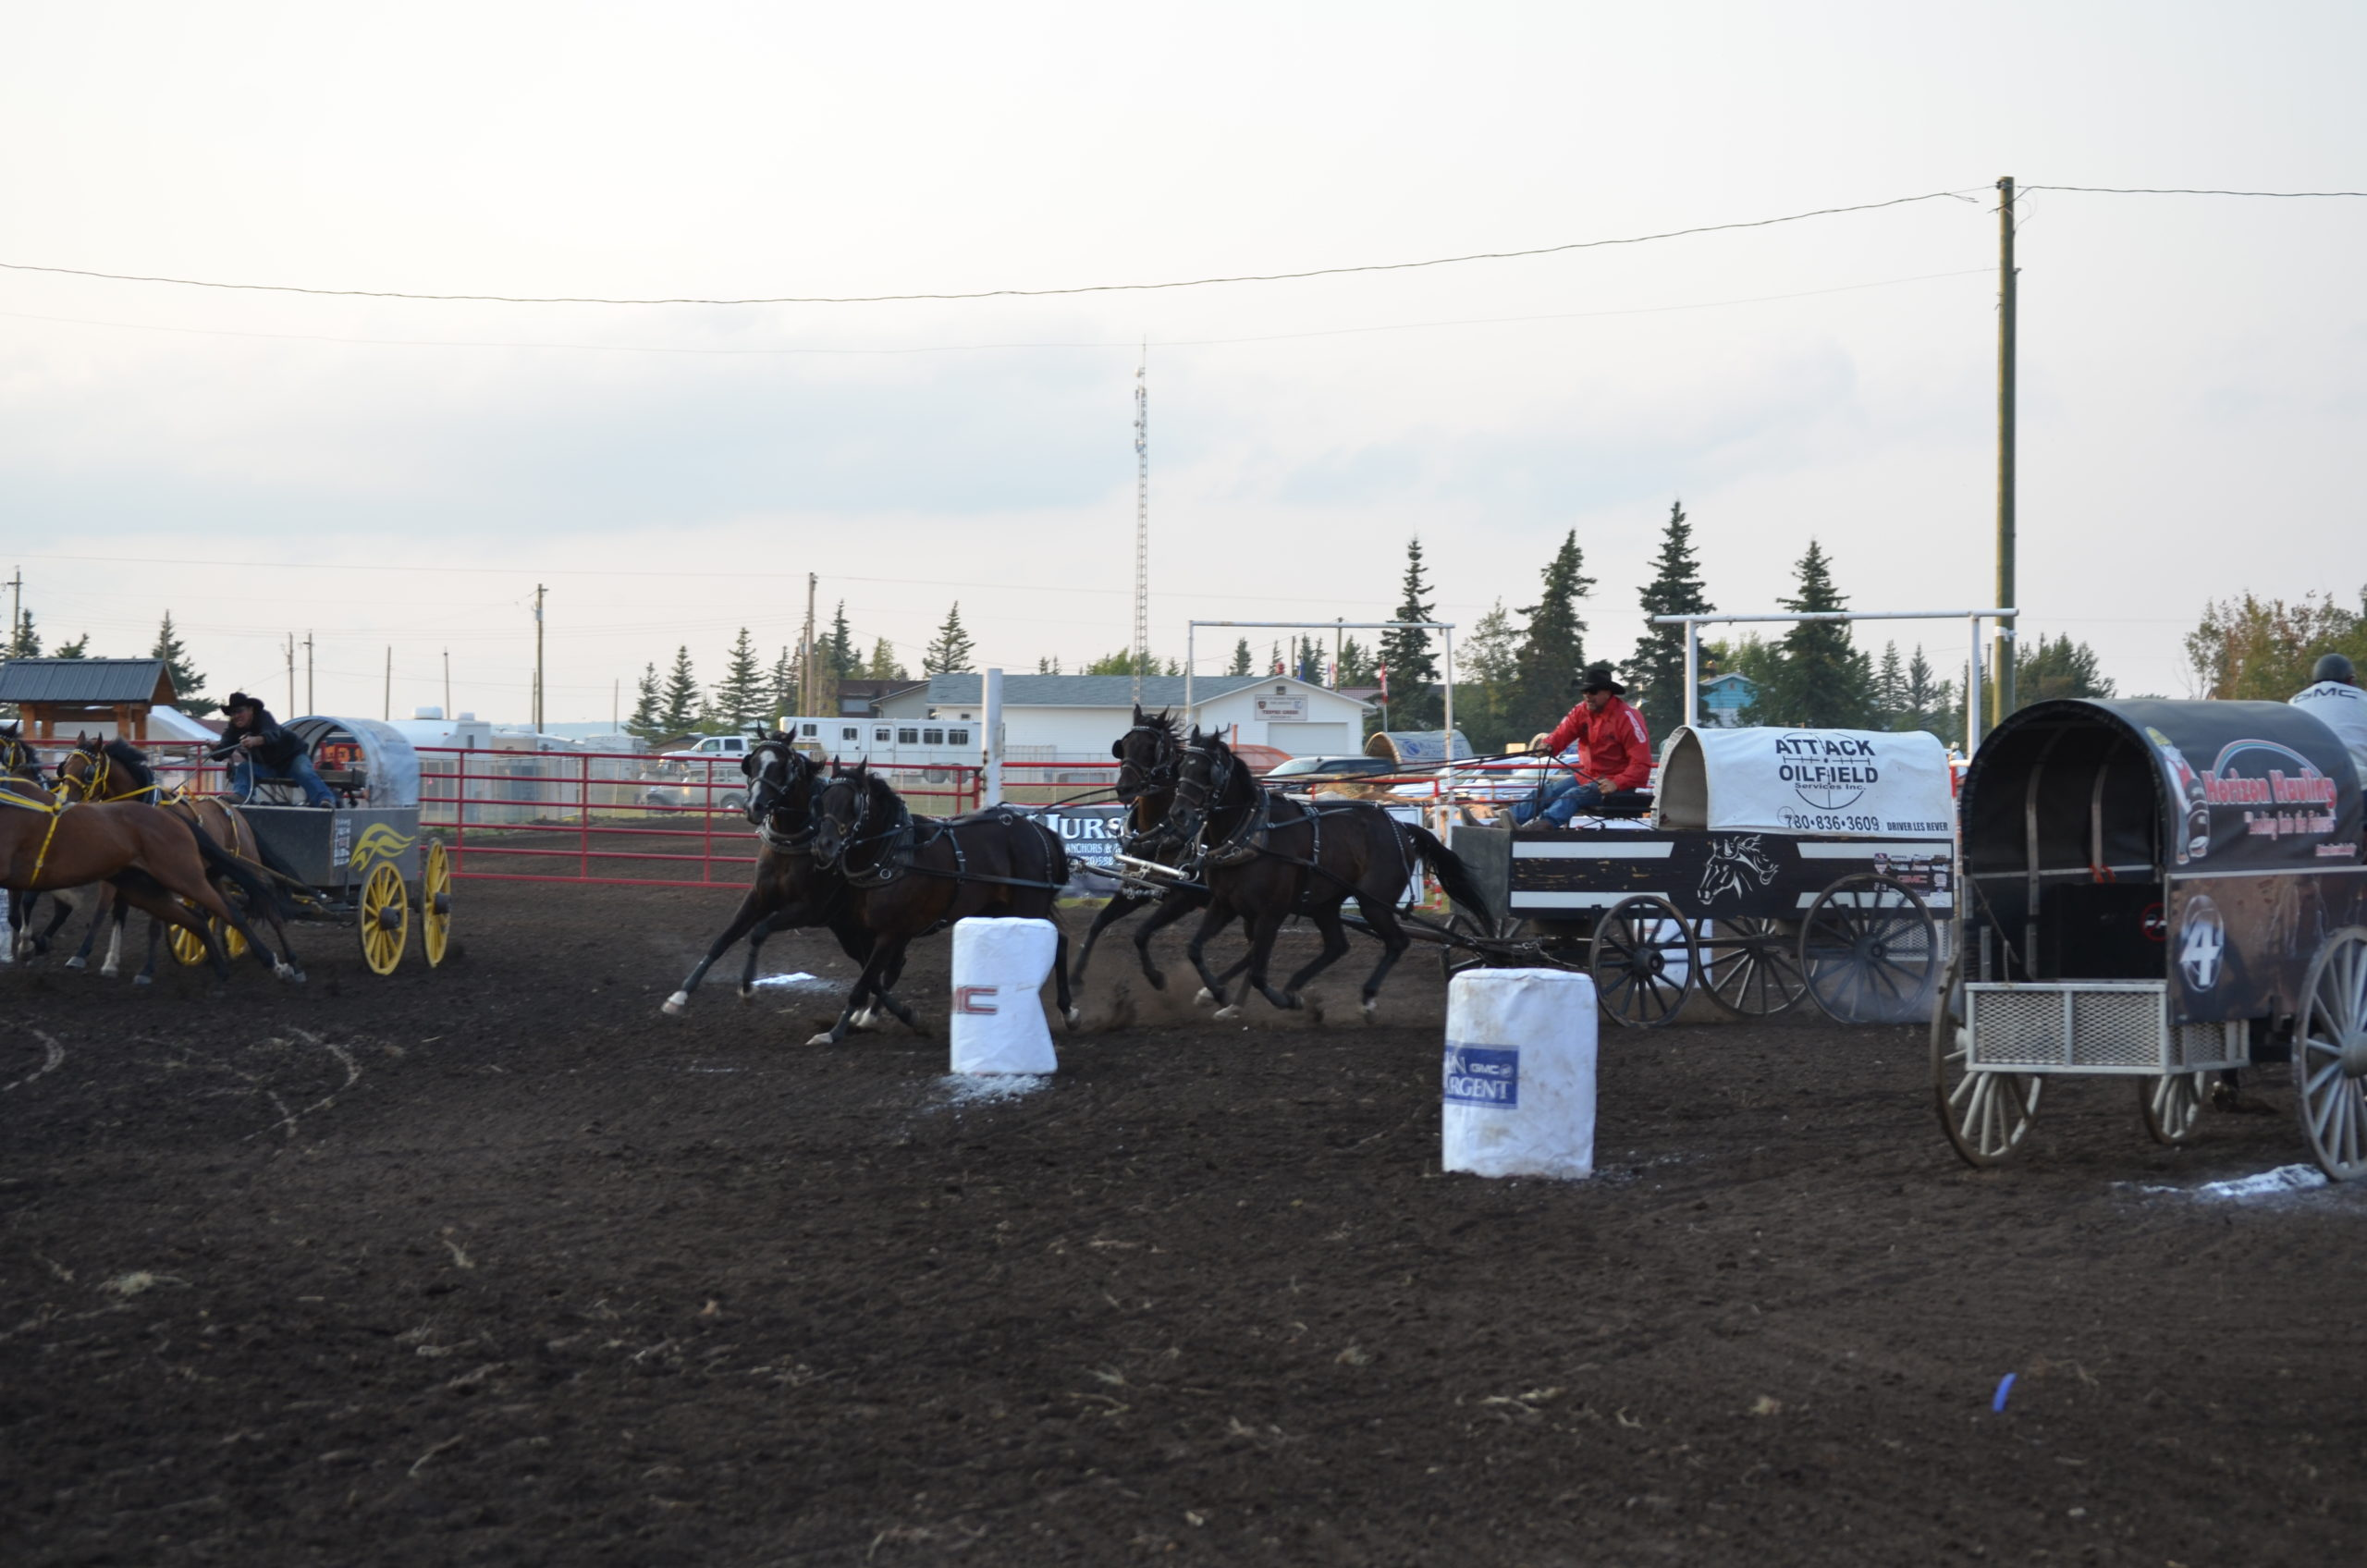 Teepee Creek Stampede: Les Rever leads wagons, pro rodeo starts today